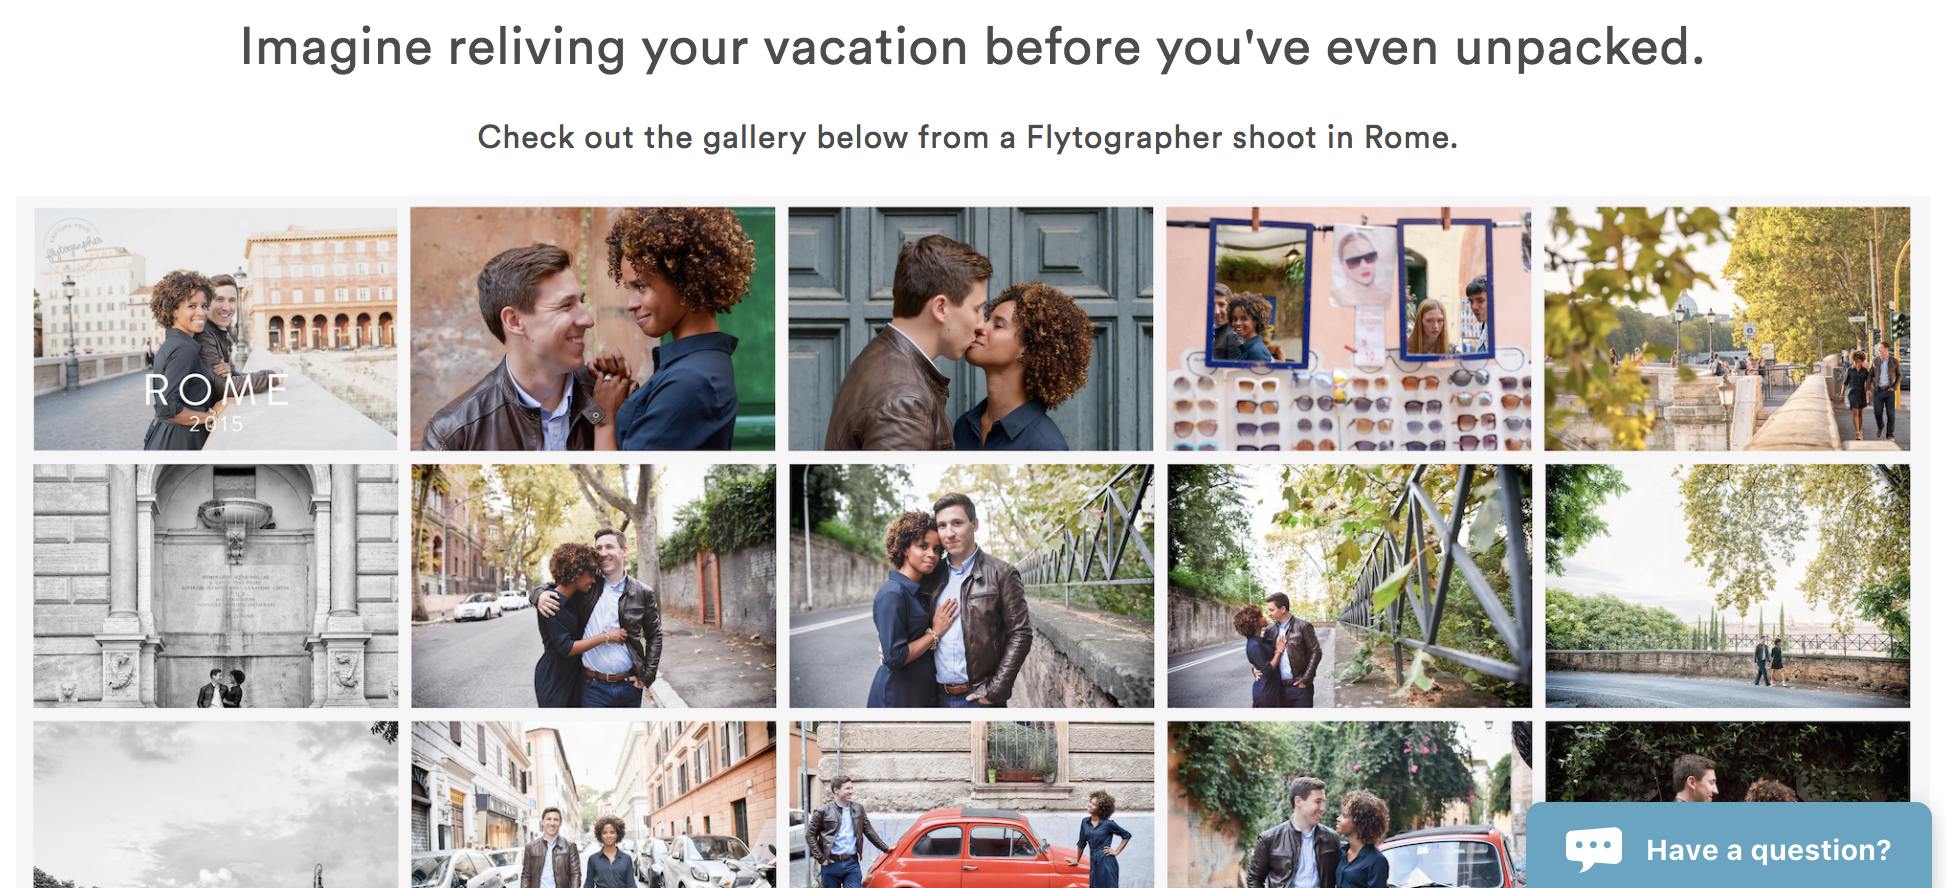 The Flytographer home page, featuring excerpts from a photo shoot, with the Olark chatbox in the lower right corner.